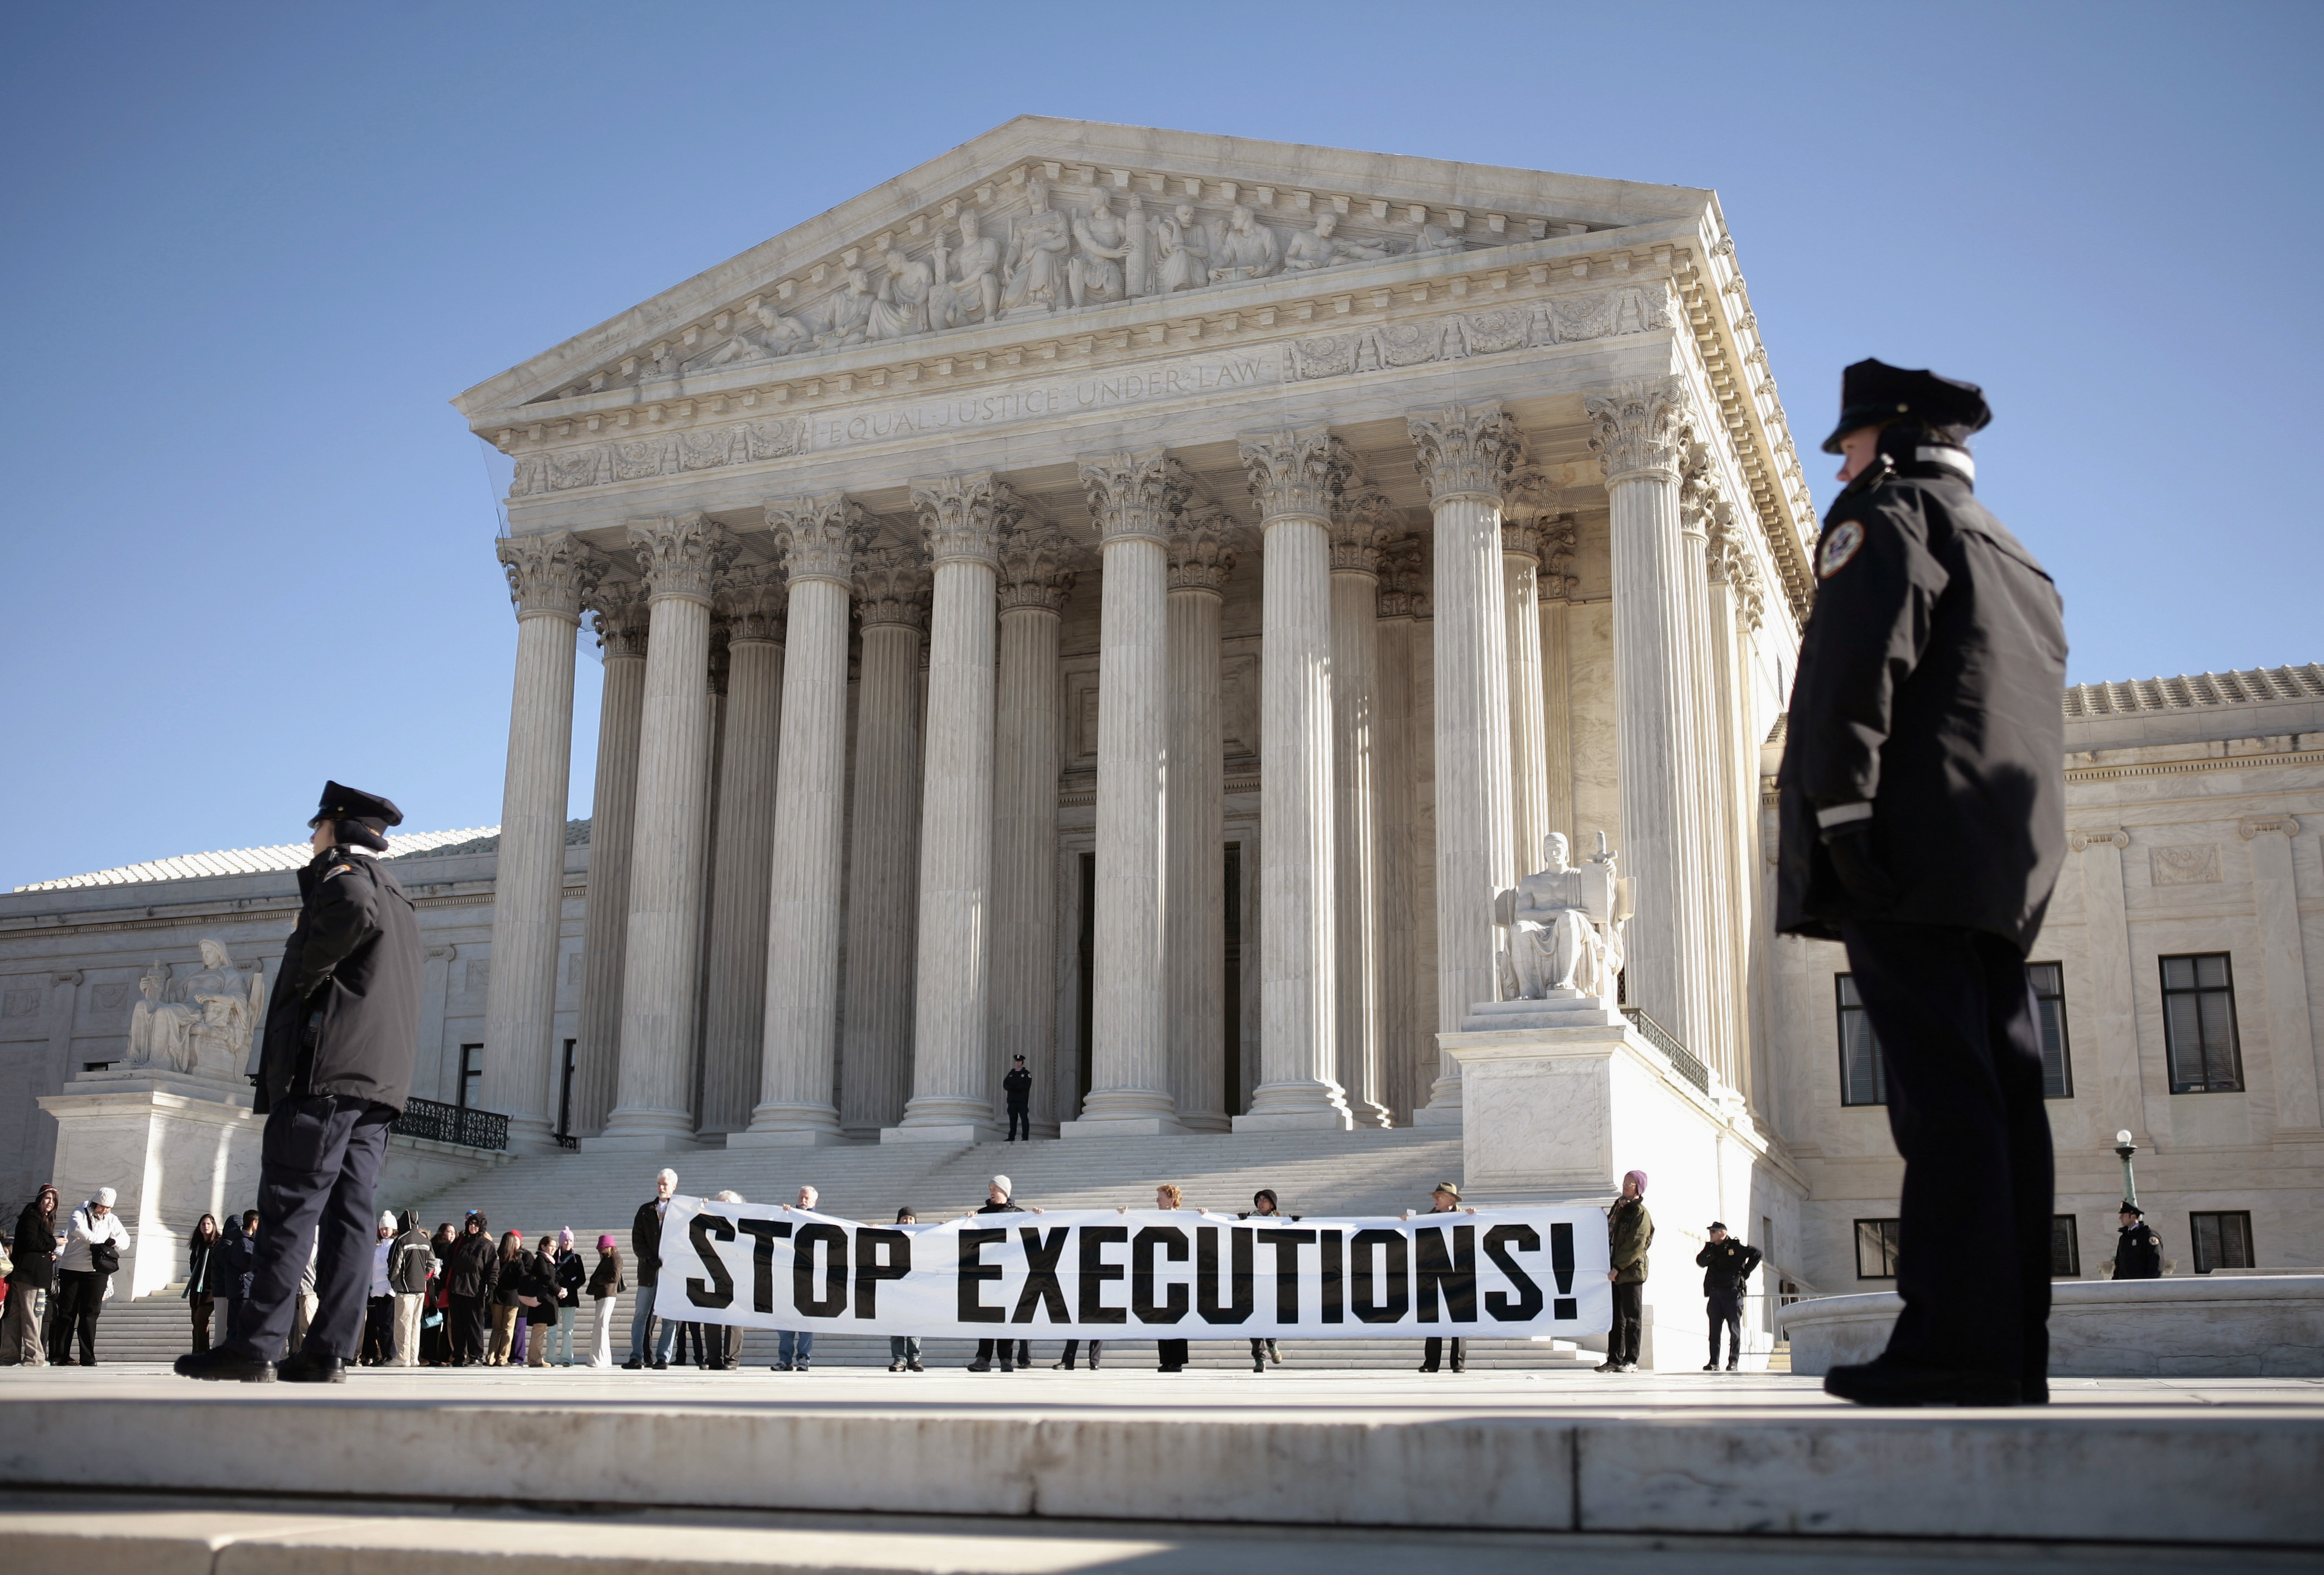 FILE PHOTO: Protesters calling for an end to the death penalty unfurl a banner before police arrest them outside the U.S. Supreme Court in Washington January 17, 2007. REUTERS/Jason Reed/File Photo - RTSFK7B